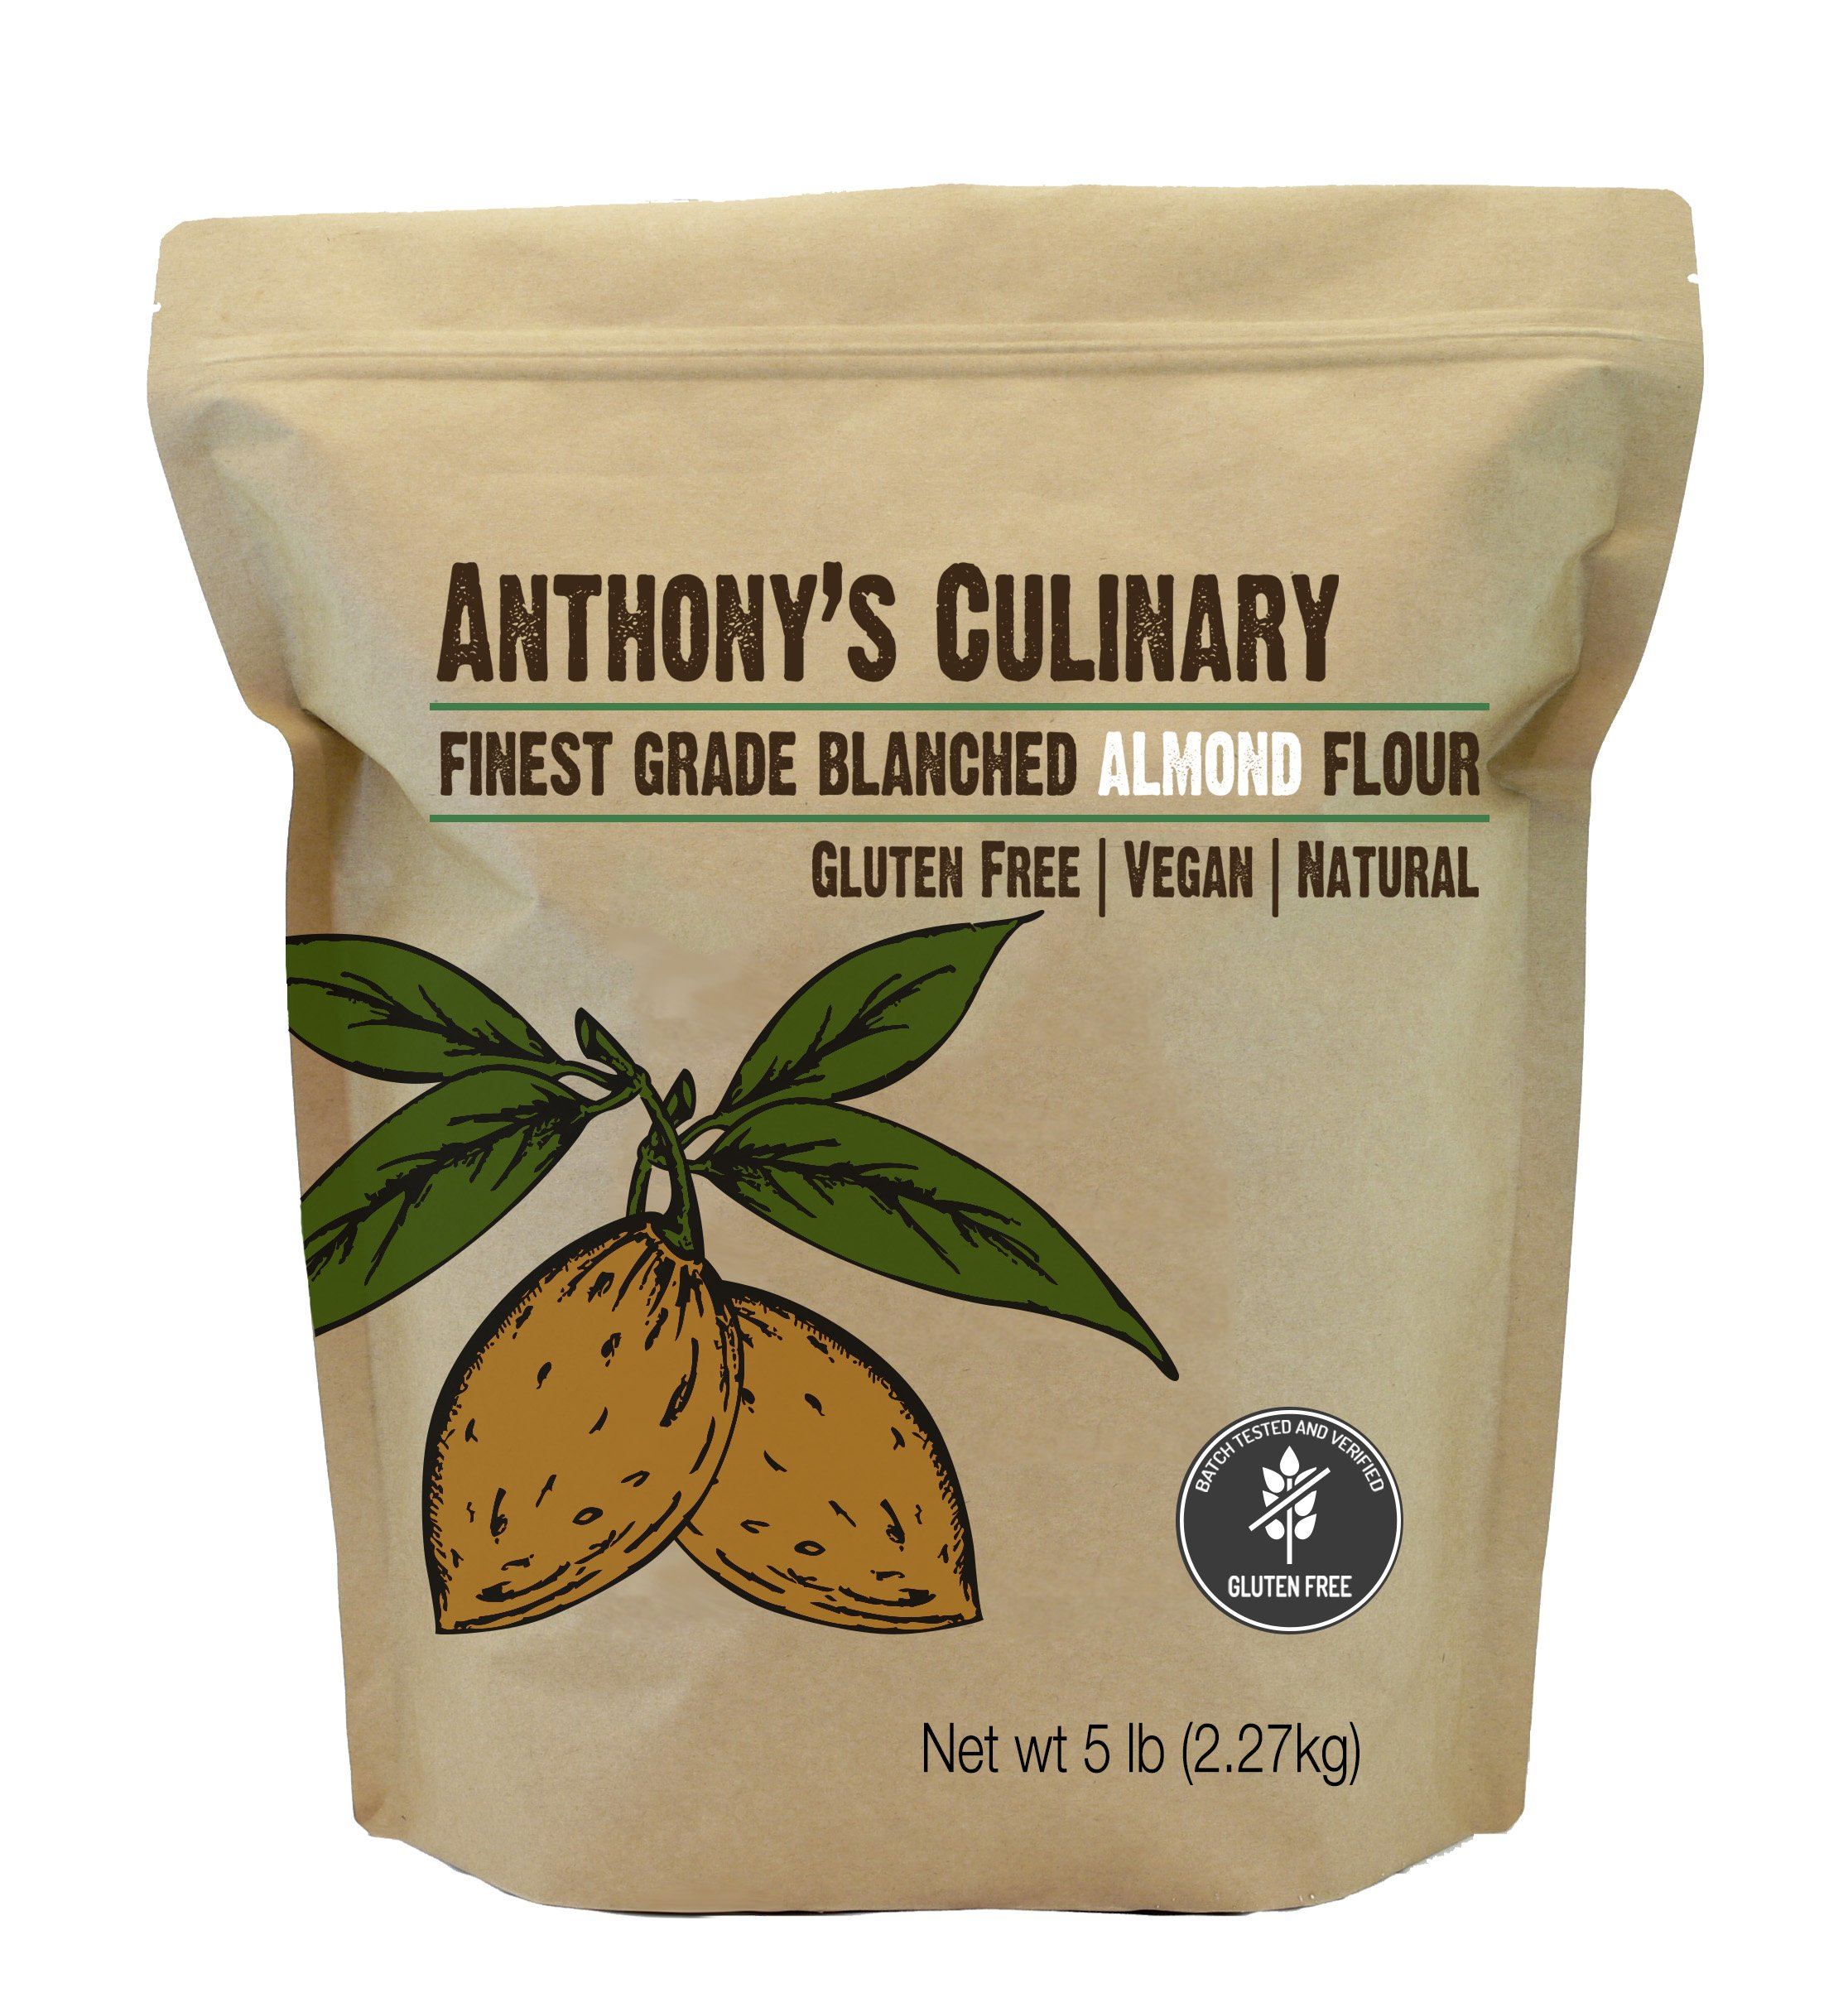 Almond Flour Blanched Culinary Grade (5lb) by Anthony's, Batch Tested Gluten-Free